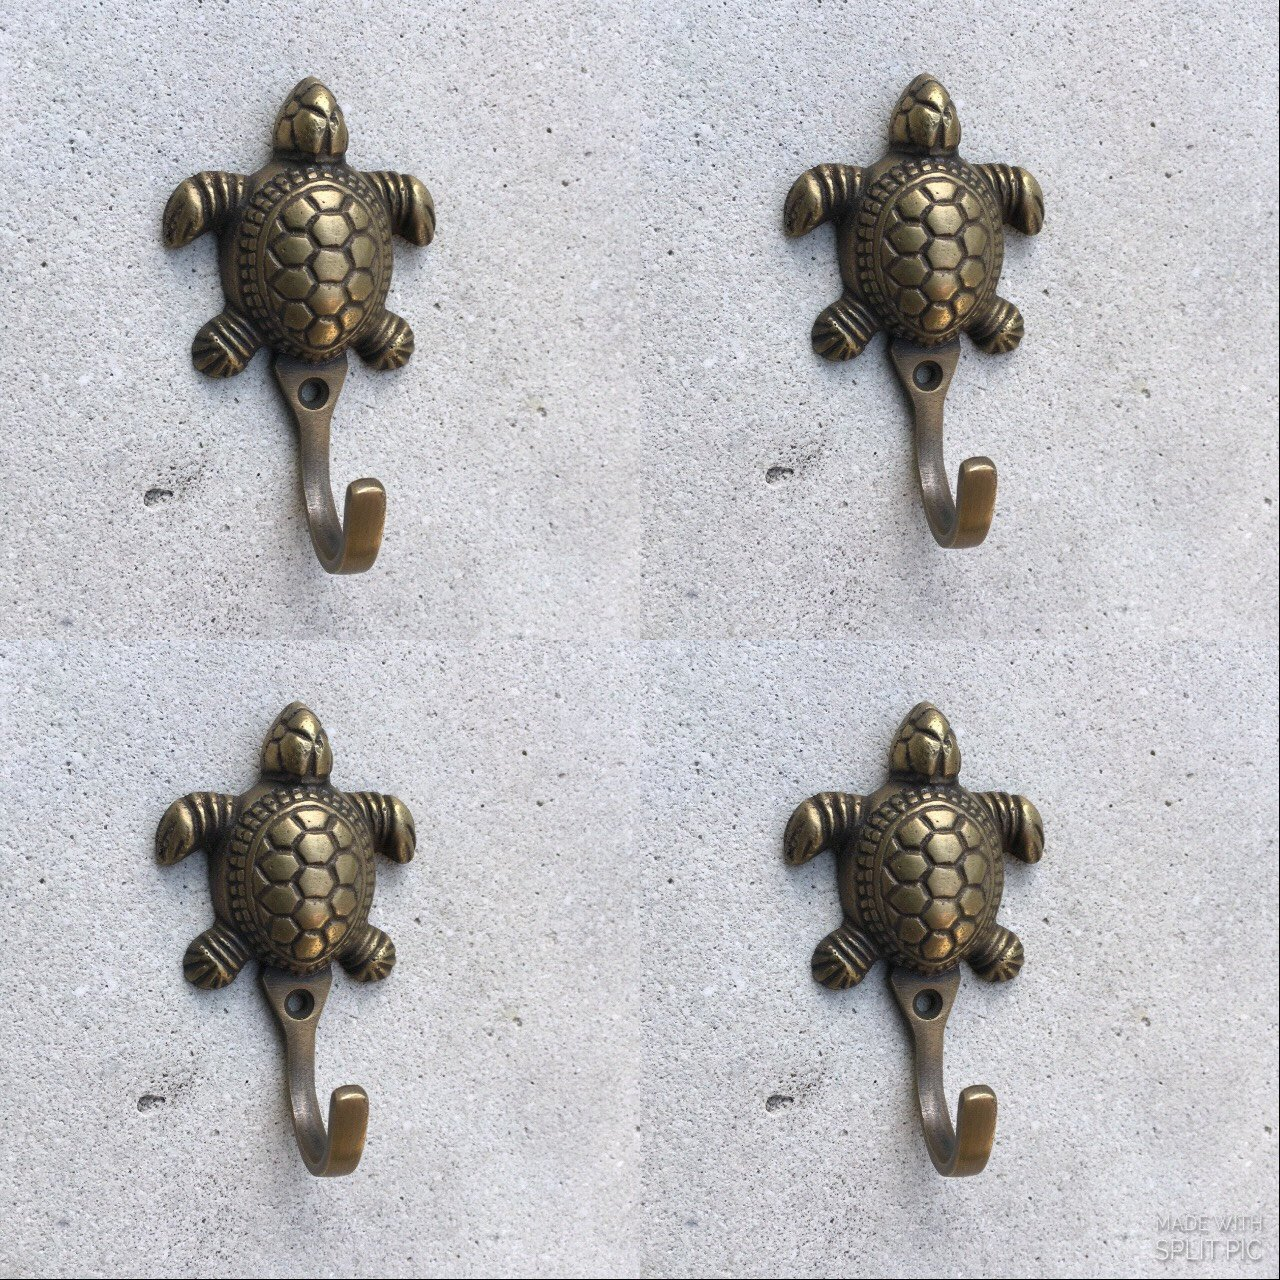 Turtle Door Knocker 4 Small Turtle Coat Hooks Solid Age Brass Old Vintage Old Style Hook Heavy 3